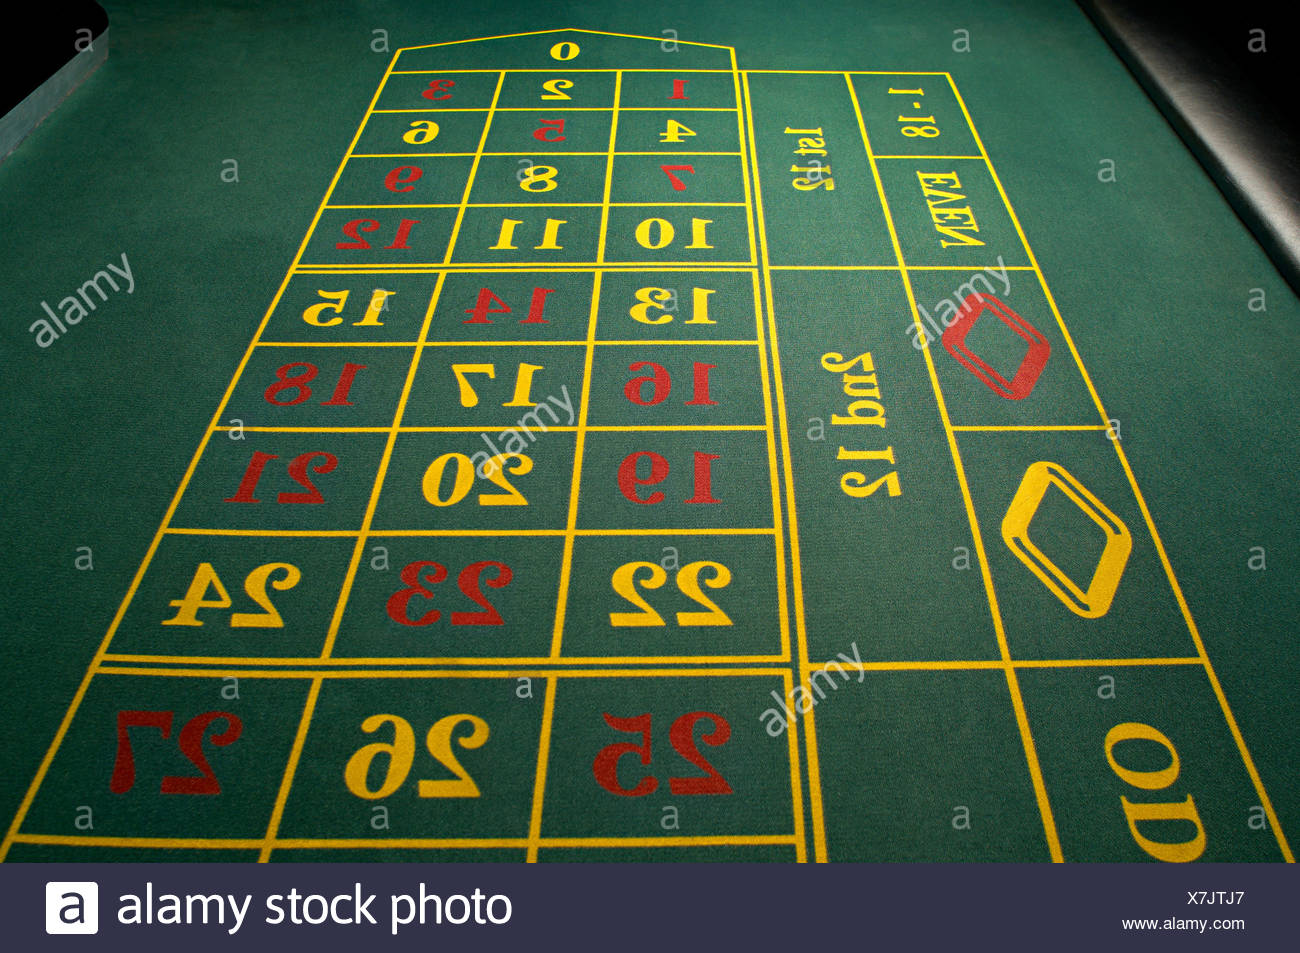 Empty roulette table - Stock Image